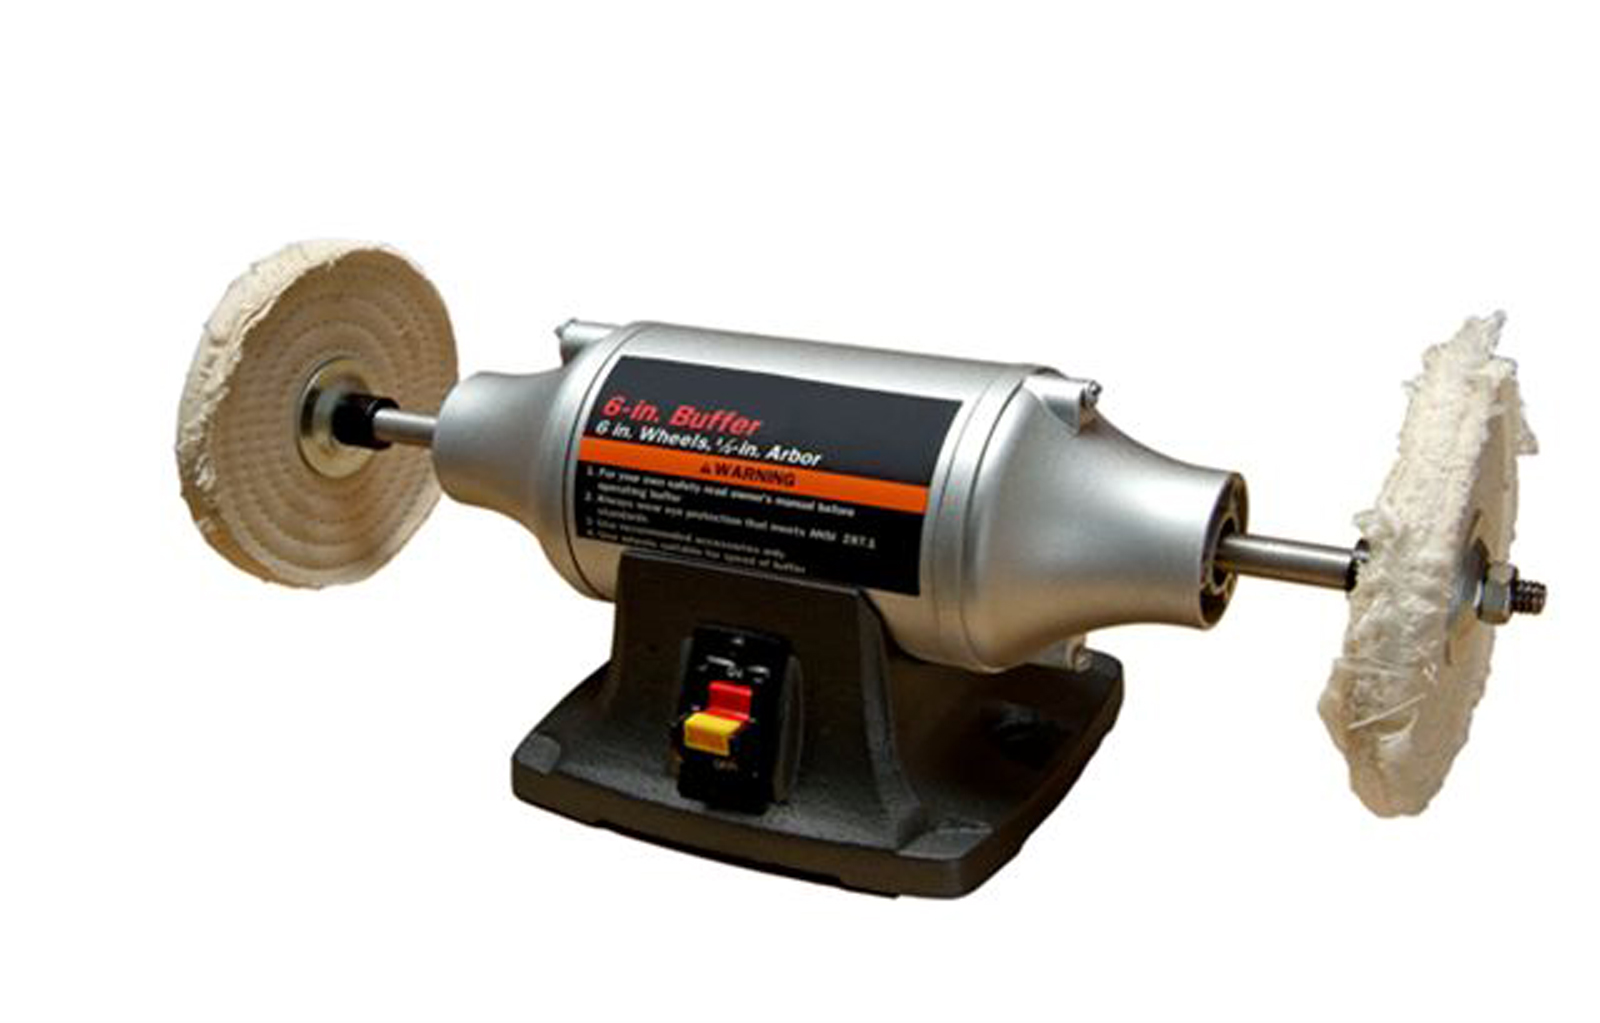 6 Quot Bench Top Buffer Get A Smooth Polish With Sears